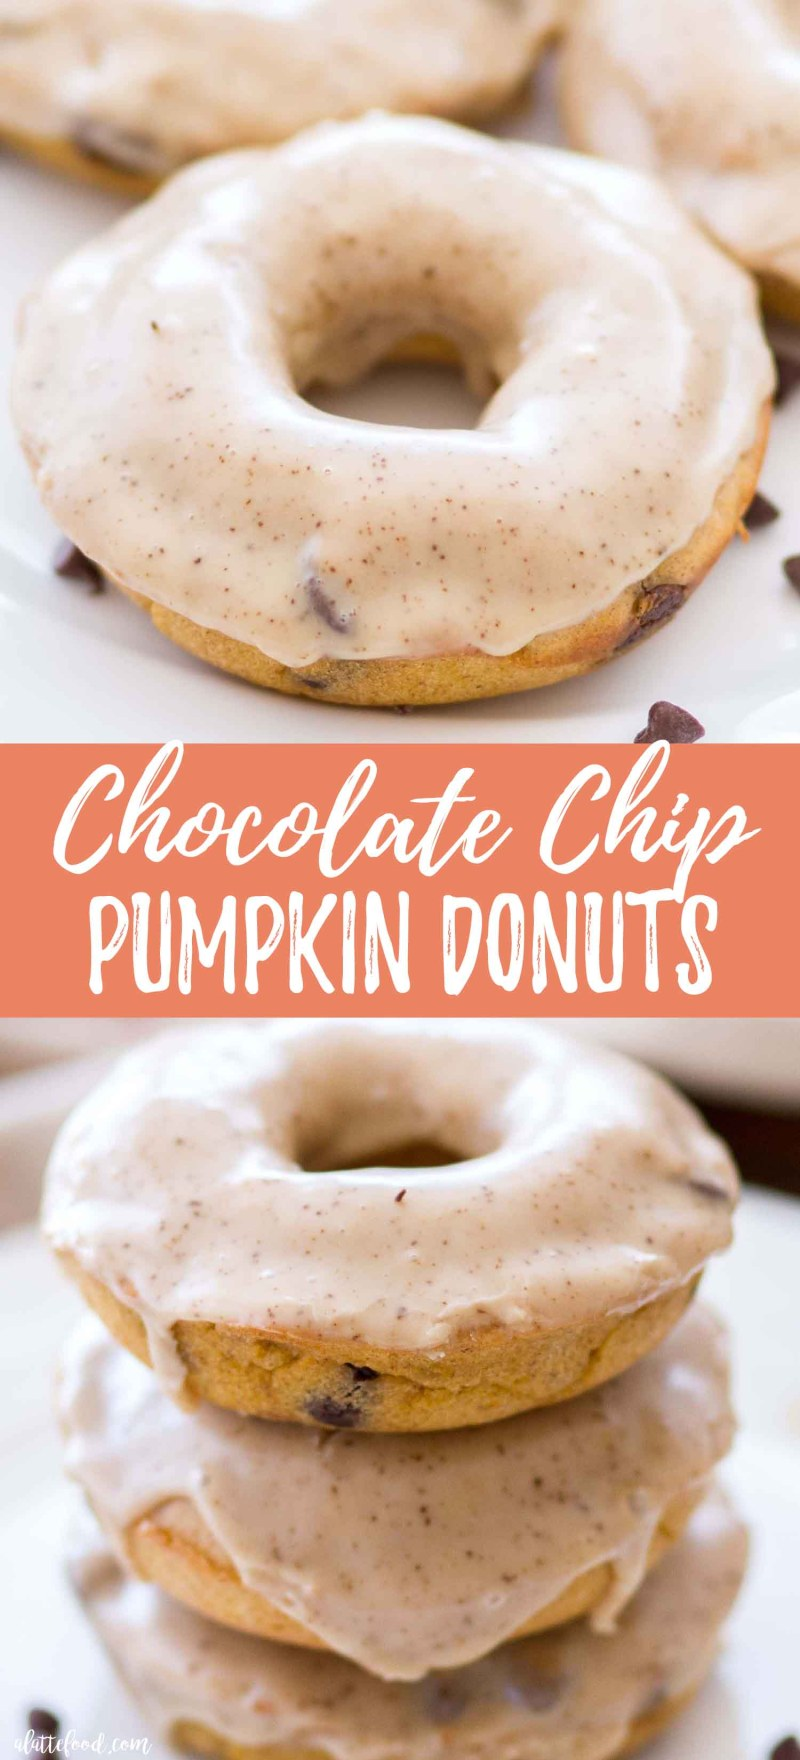 Chocolate Chip Pumpkin Donuts Recipe (baked pumpkin donuts)